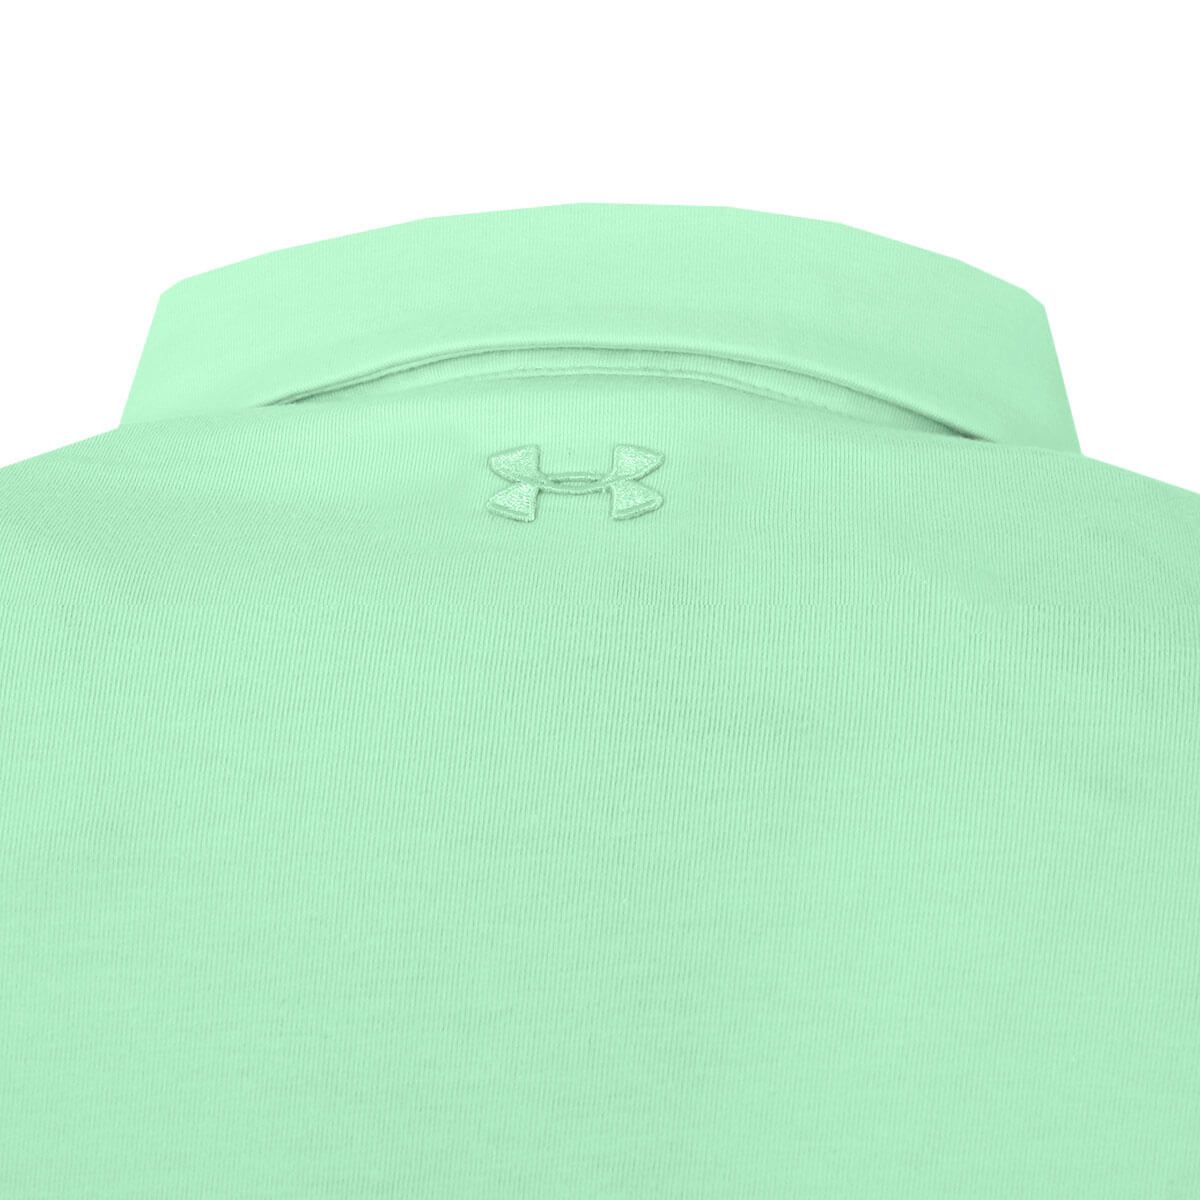 Under-Armour-Mens-2019-CC-Scramble-Charged-Cotton-Stretch-Golf-Polo-Shirt thumbnail 12